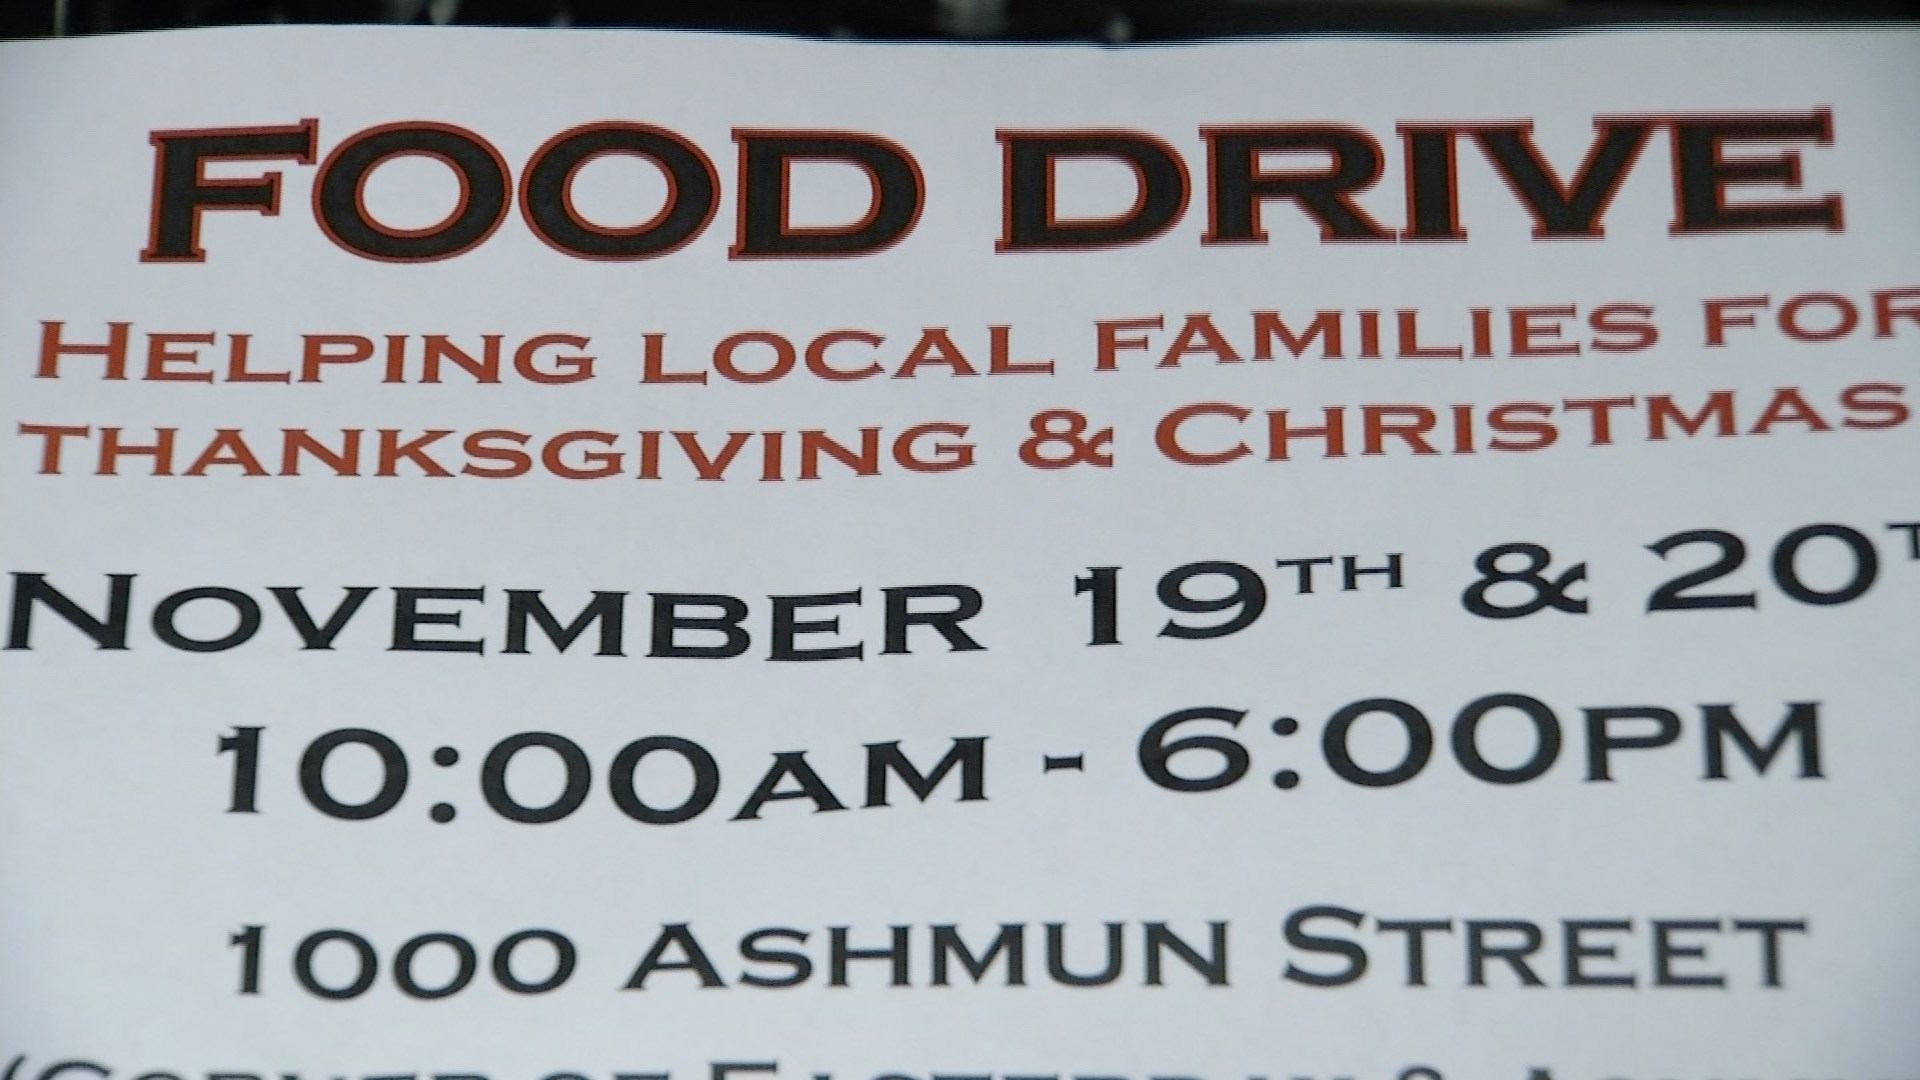 Sault Ste Marie Motorcycle Club To Hold Food Drive